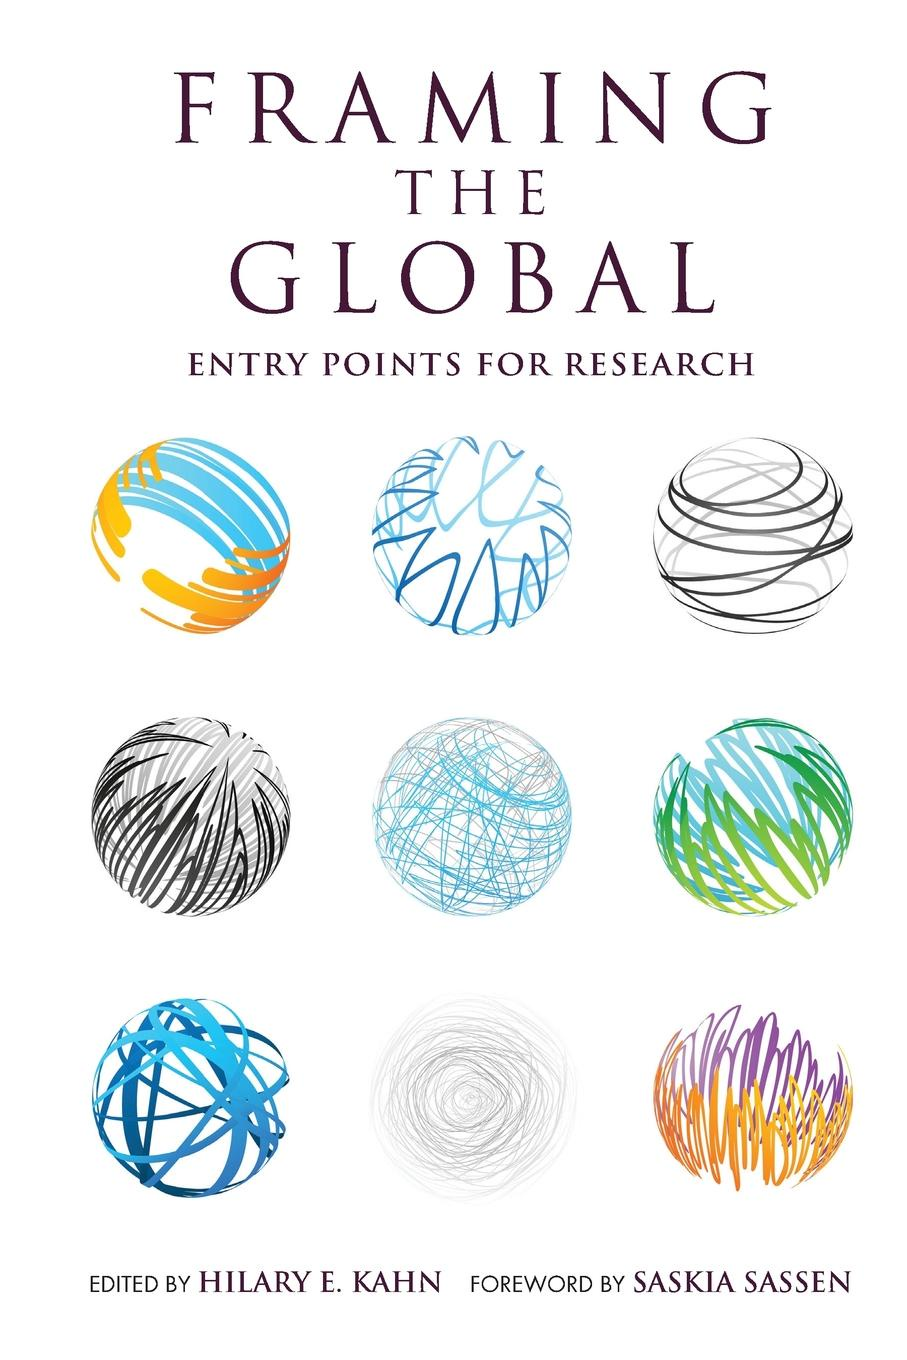 Framing the Global. Entry Points for Research